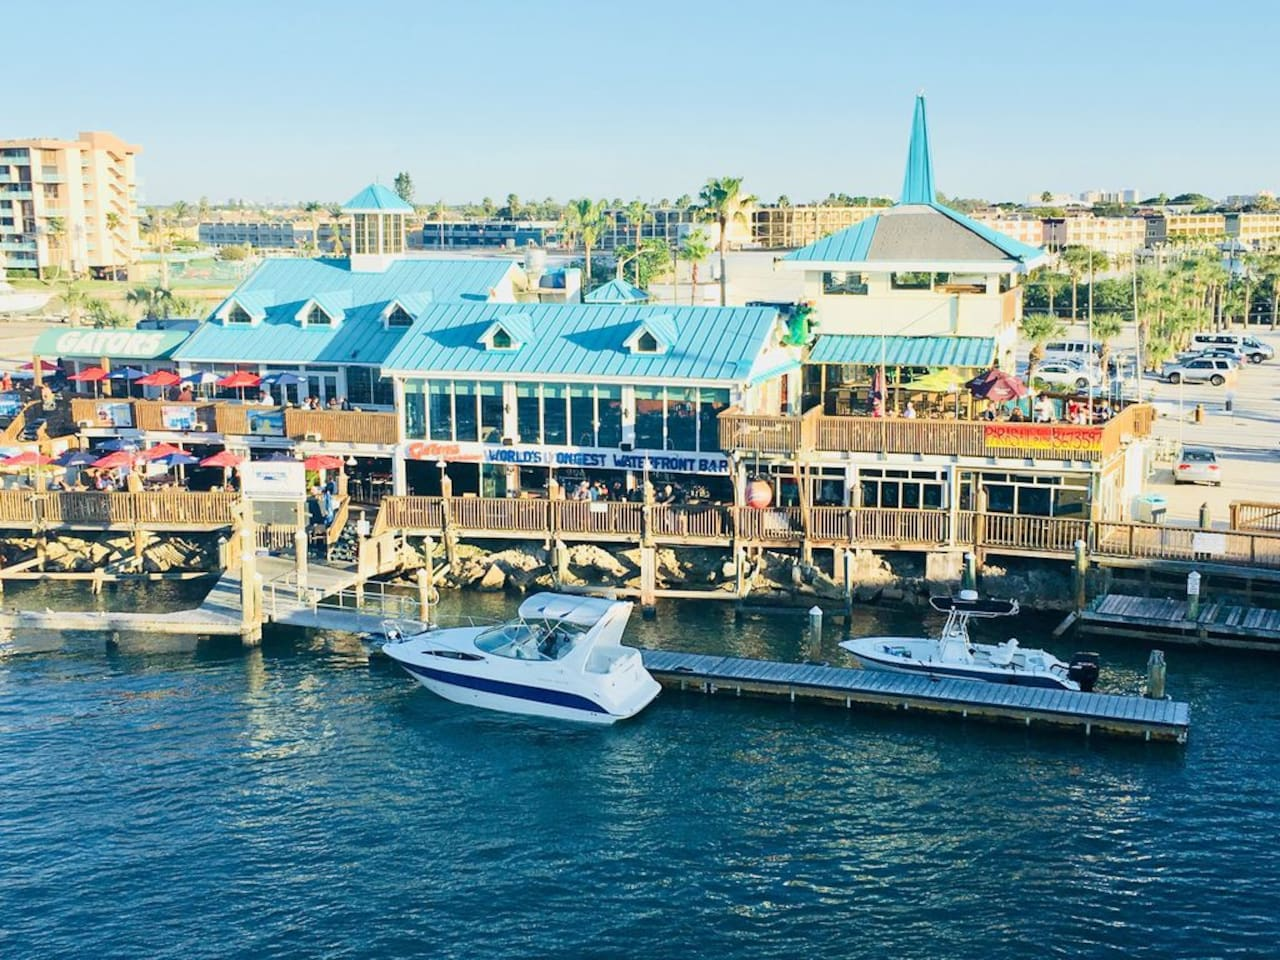 Welcome to Indian Rocks Beach! Florida. Kick back and relax, you made it! You are in a great location with dozens of things to do and places to visit - John Pass Pier